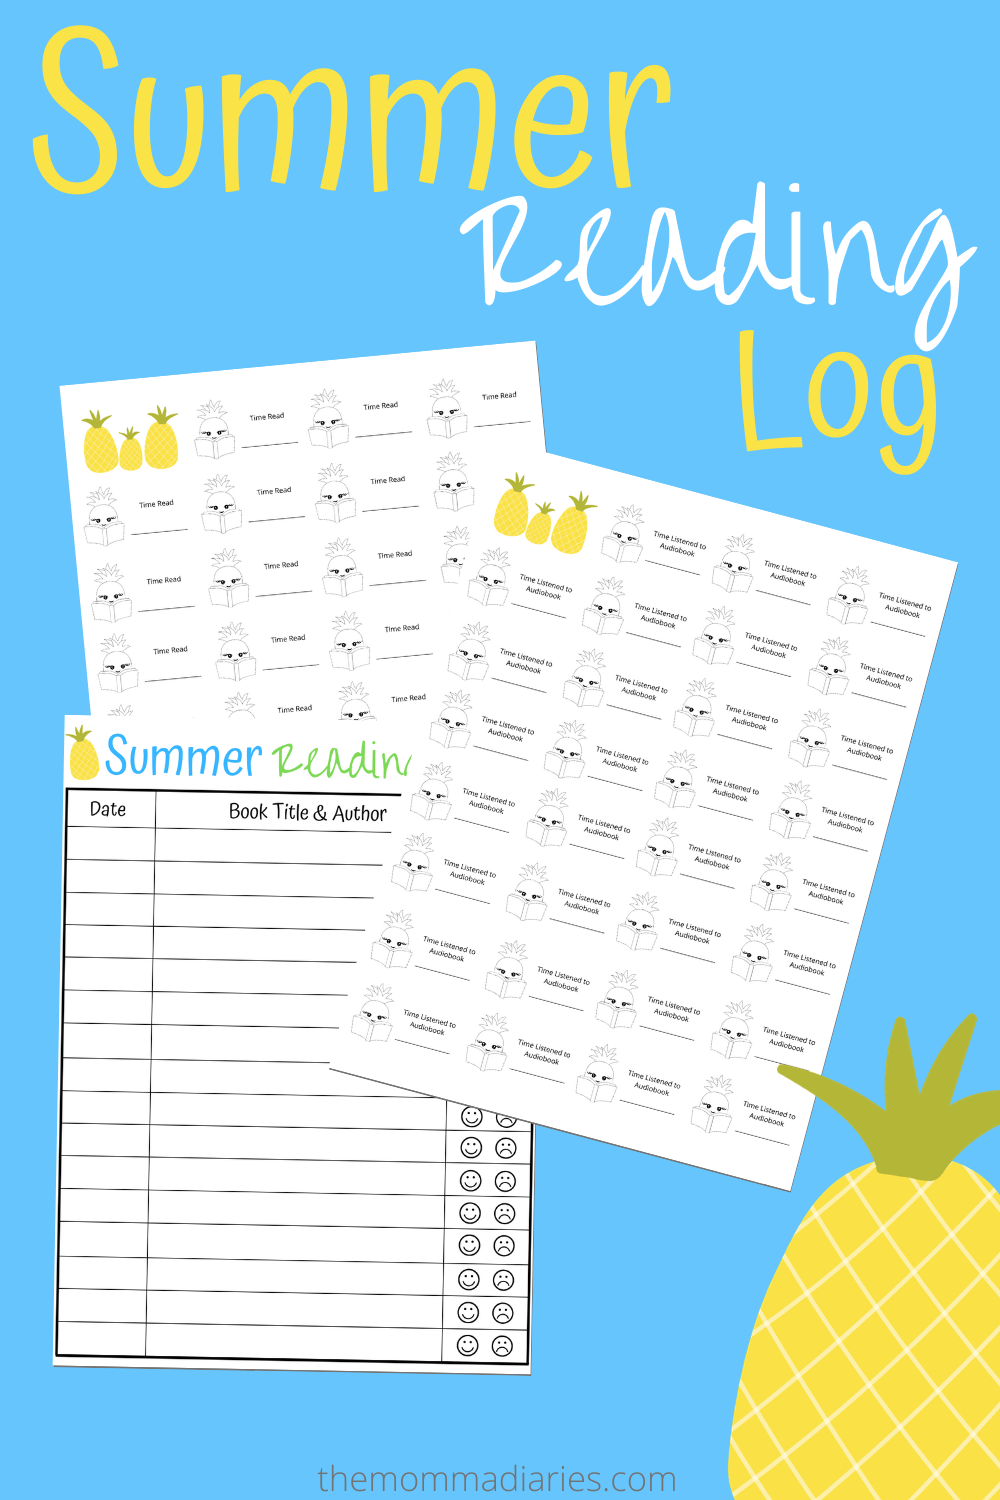 Printable Summer Reading Log for Kids The Momma Diaries